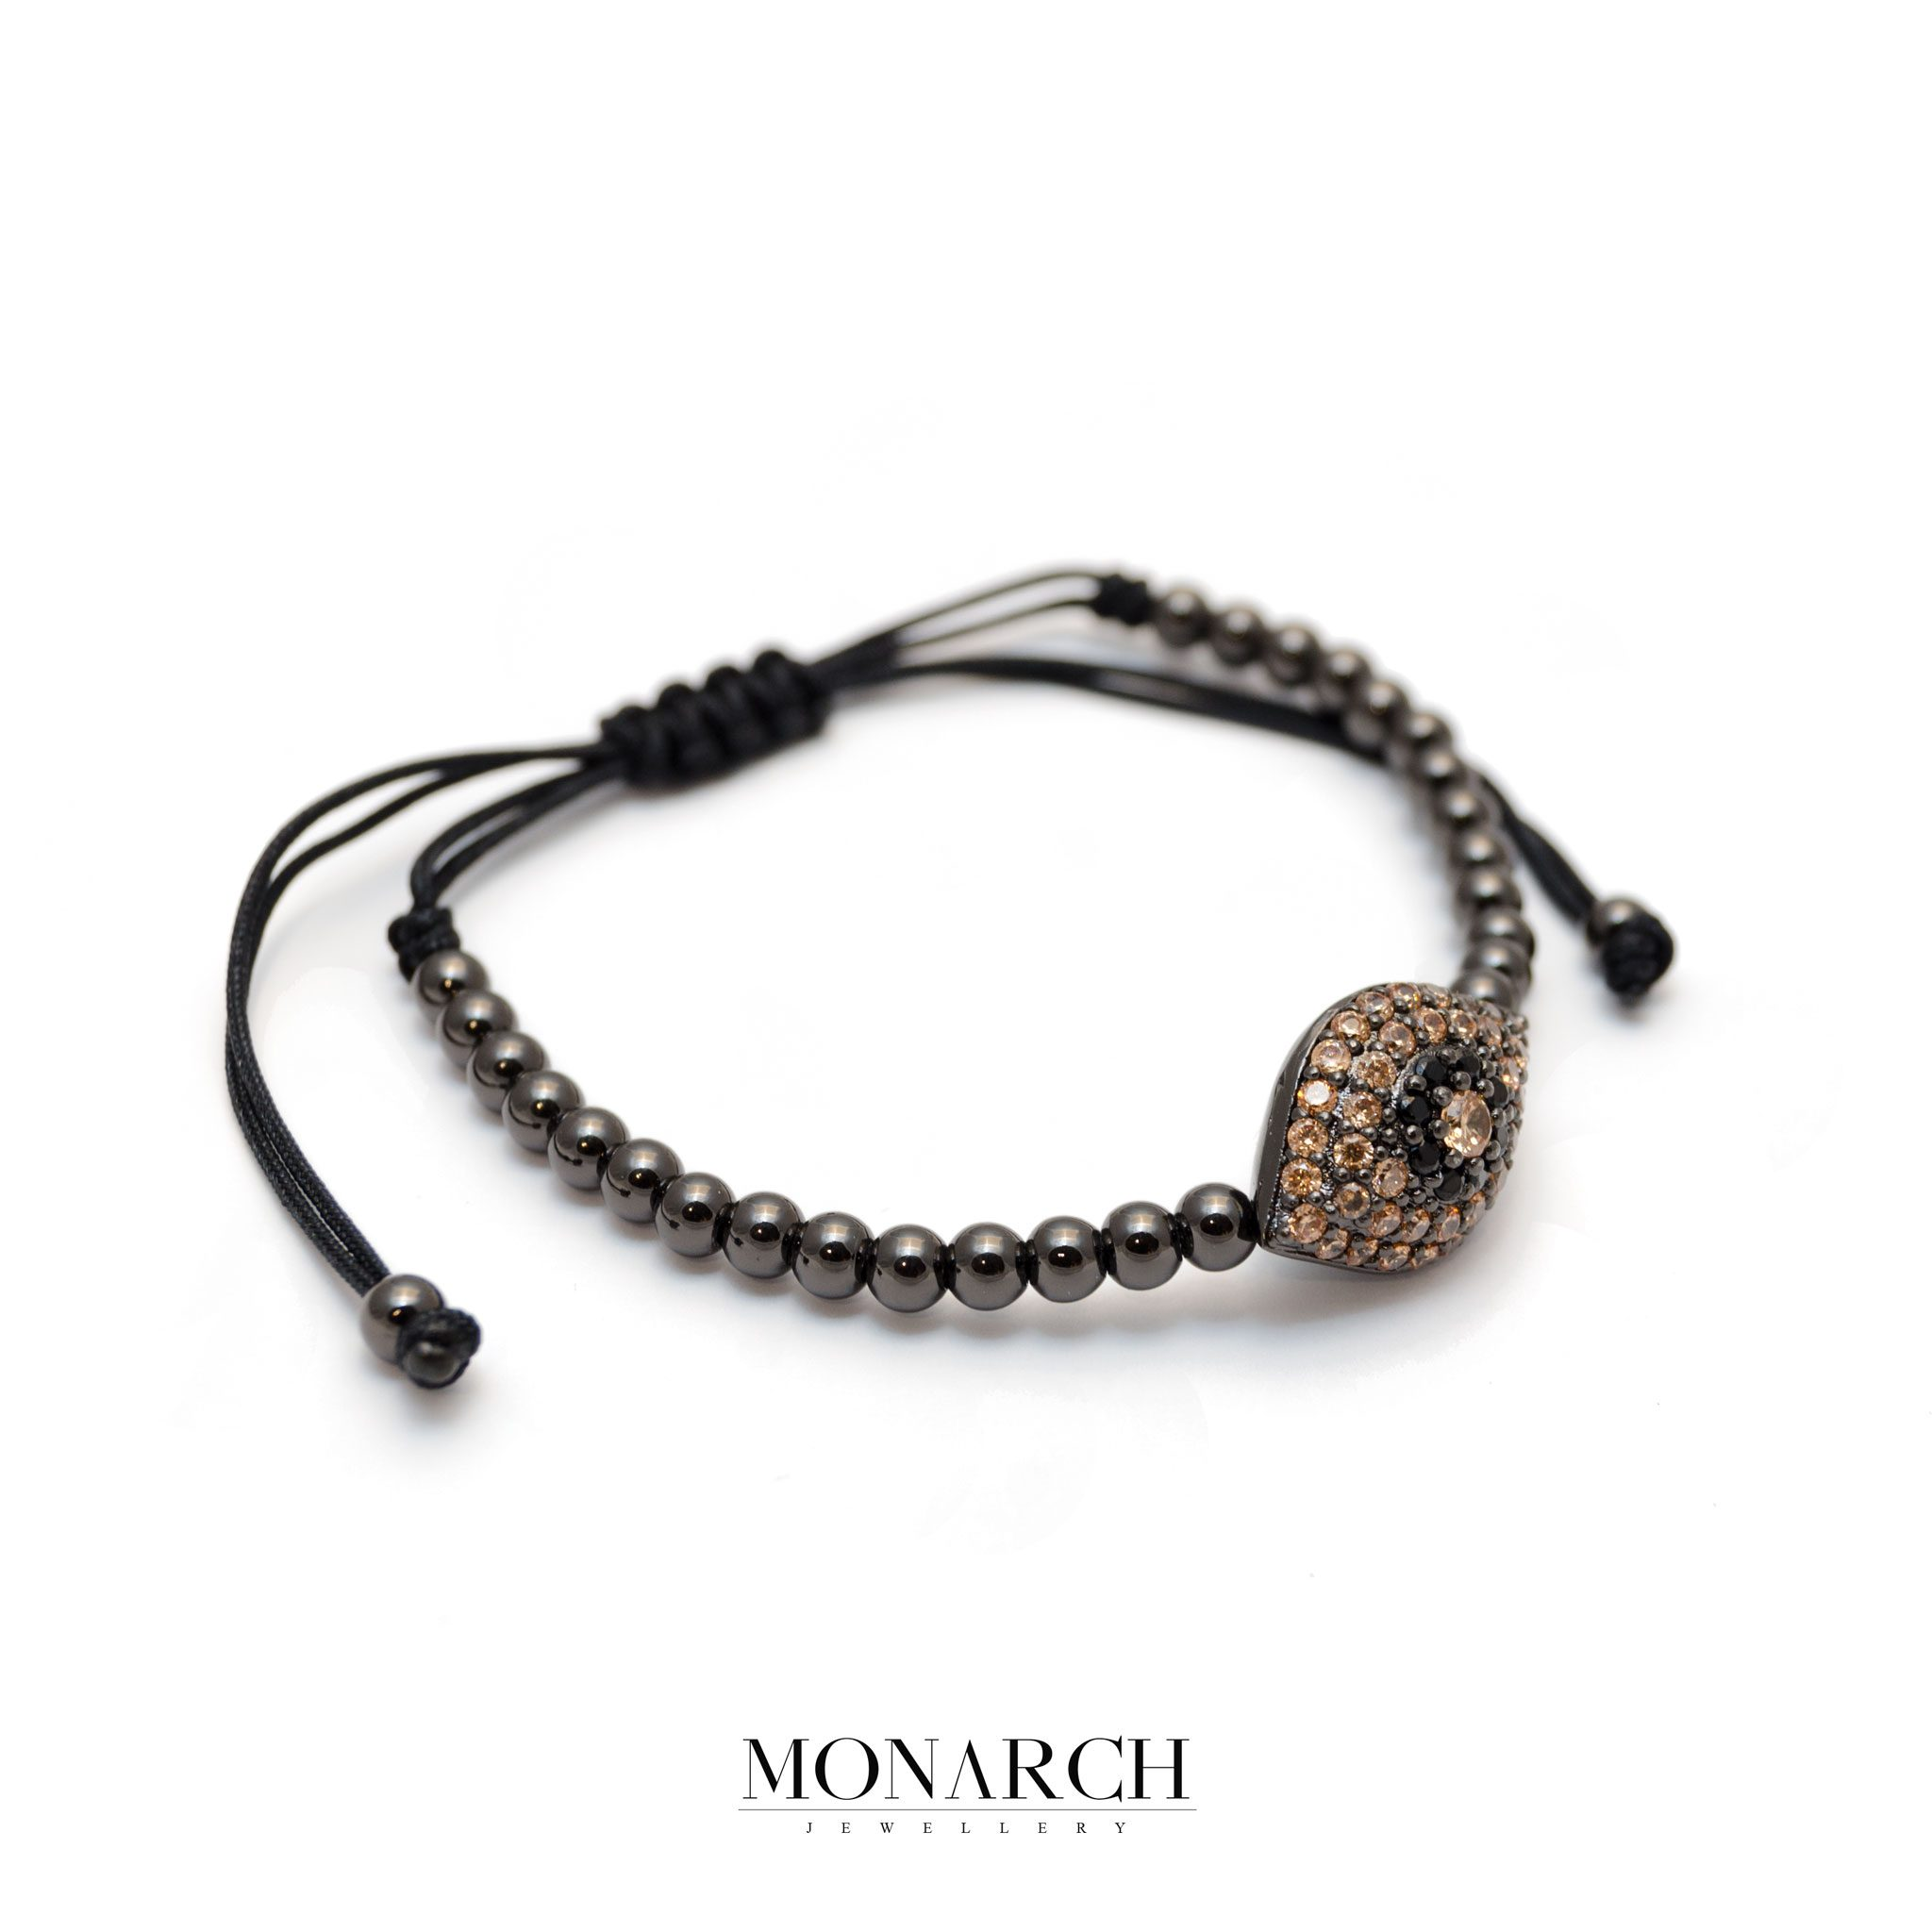 Monarch Jewellery Black Brown Evil Eye Charm Macrame Bracelet